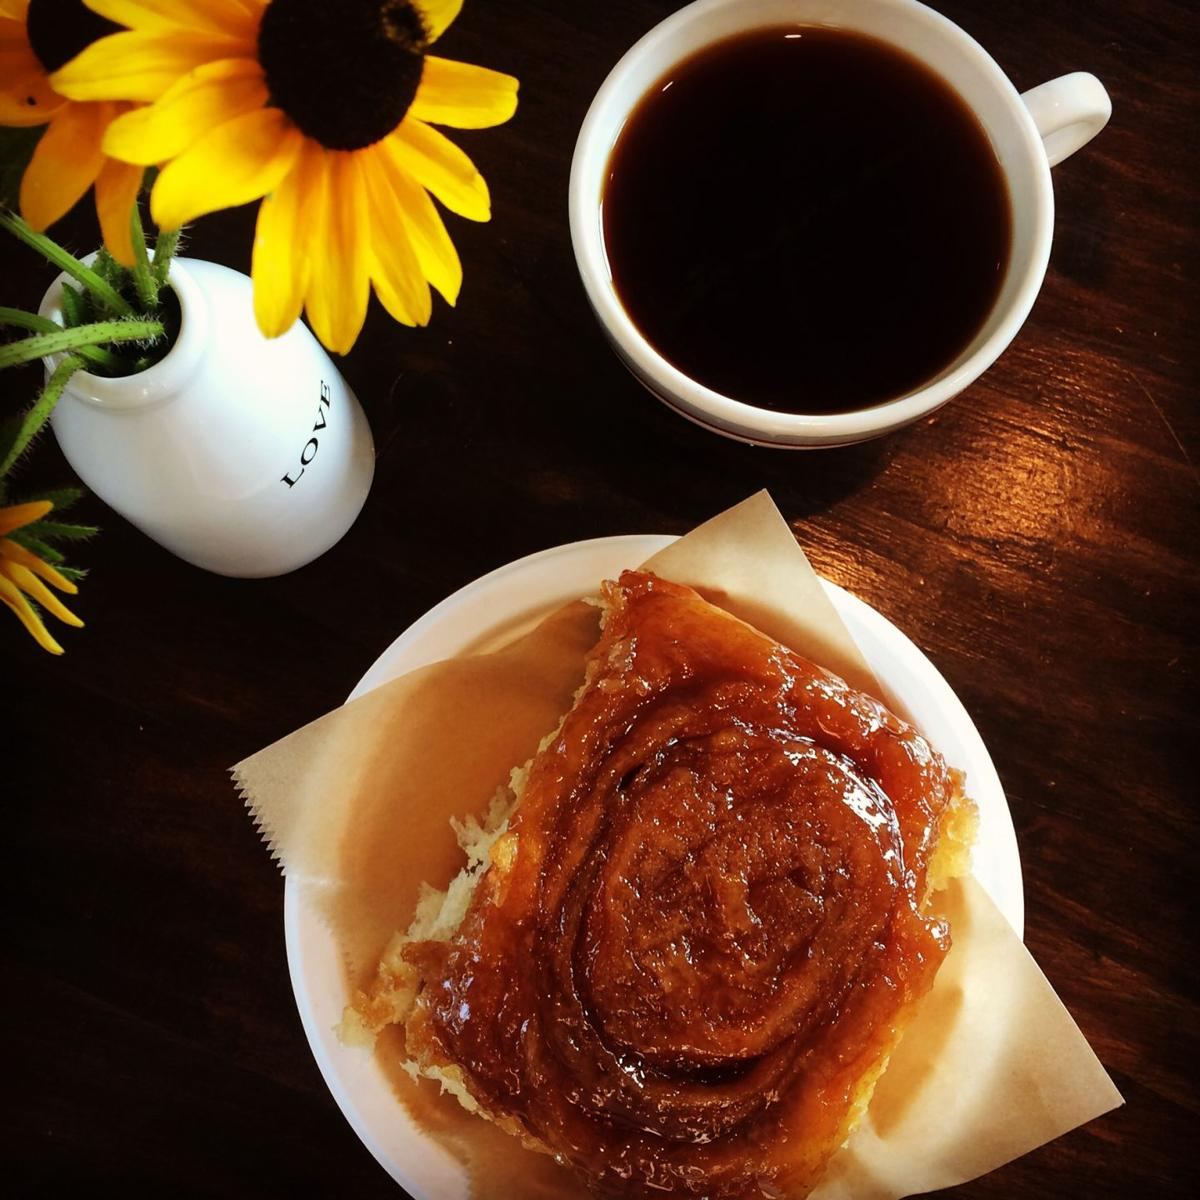 Ruby's Roost Bakery and Coffee